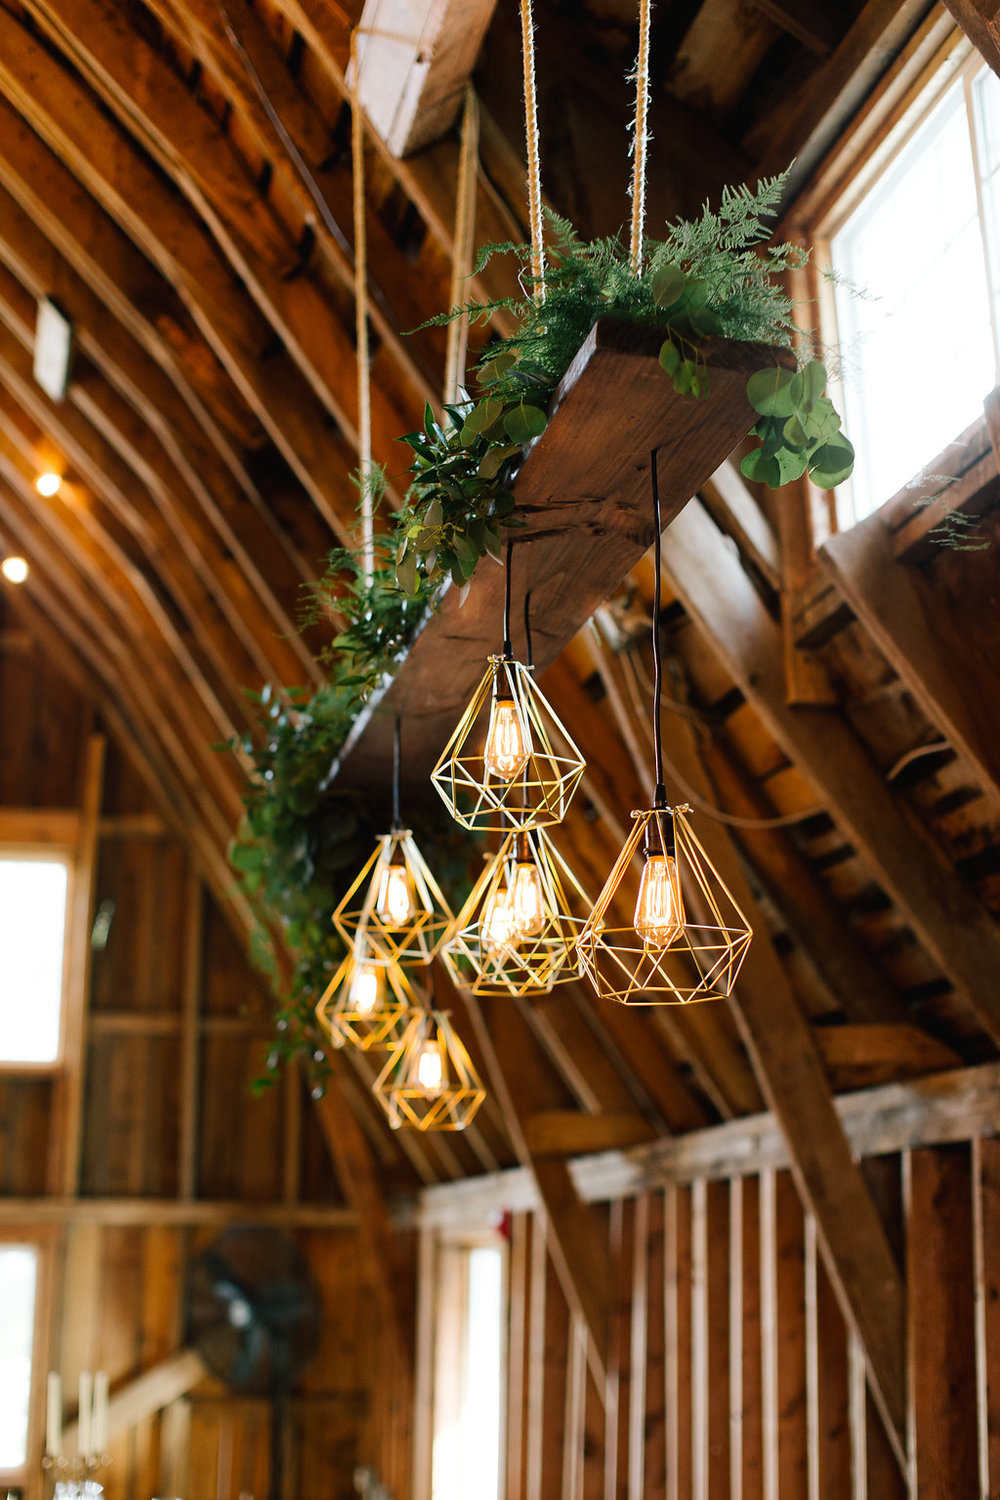 Jade and Seth Bloom Lake Barn wedding | Allison Hopperstad Photography | A Vintage Touch Weddings planning nad design | Day of Coordinating by Sixpence Events | chandelier bar with greenery